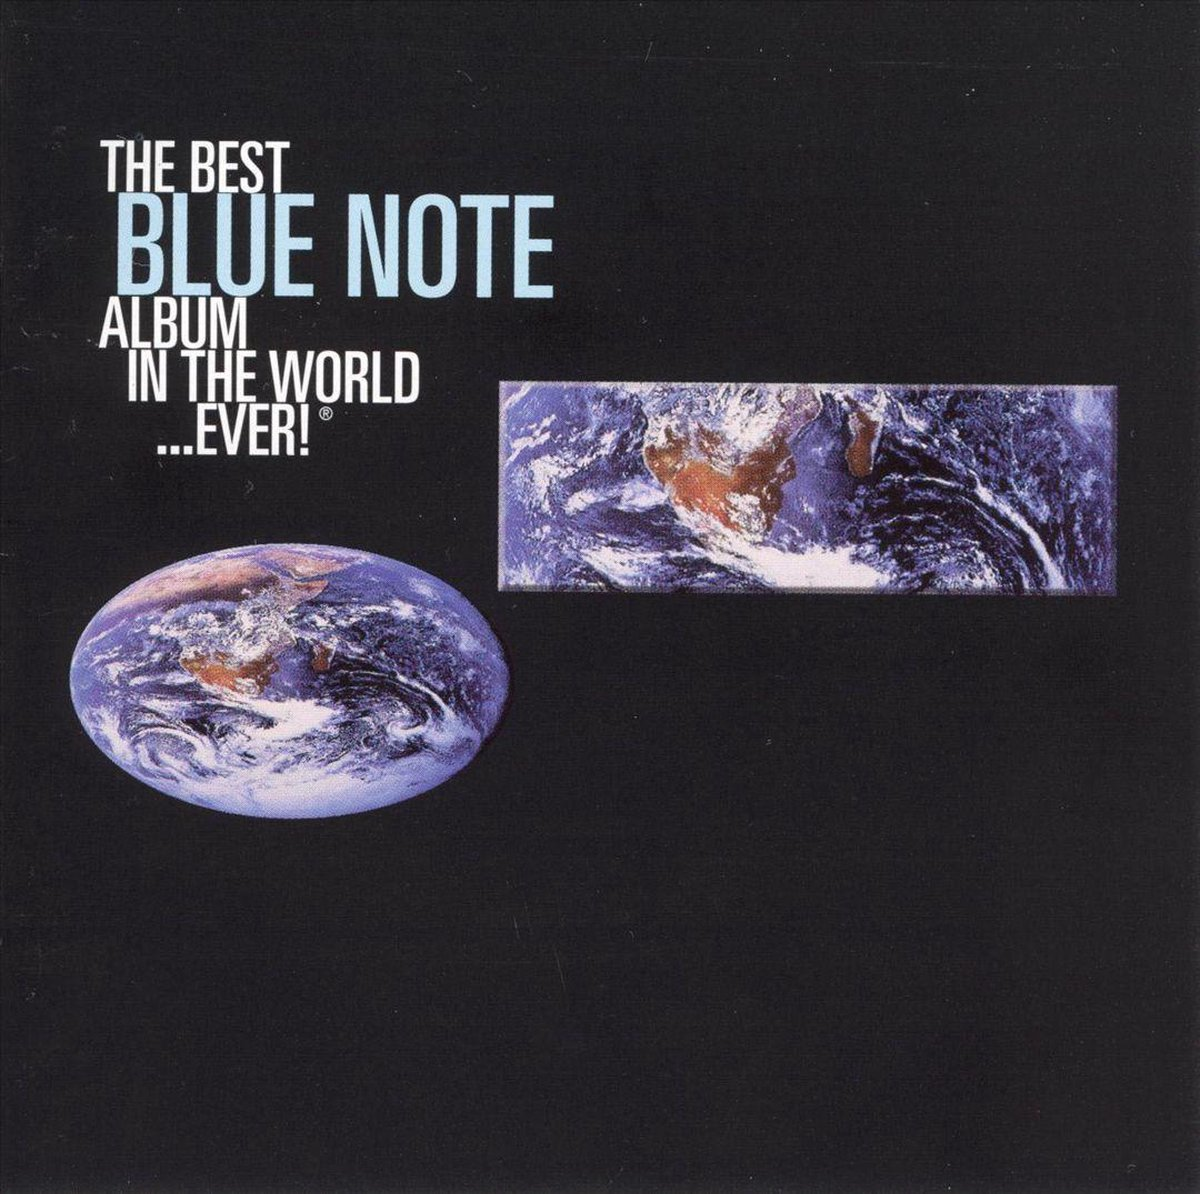 The Best Blue Note Album In The World...Ever! - various artists